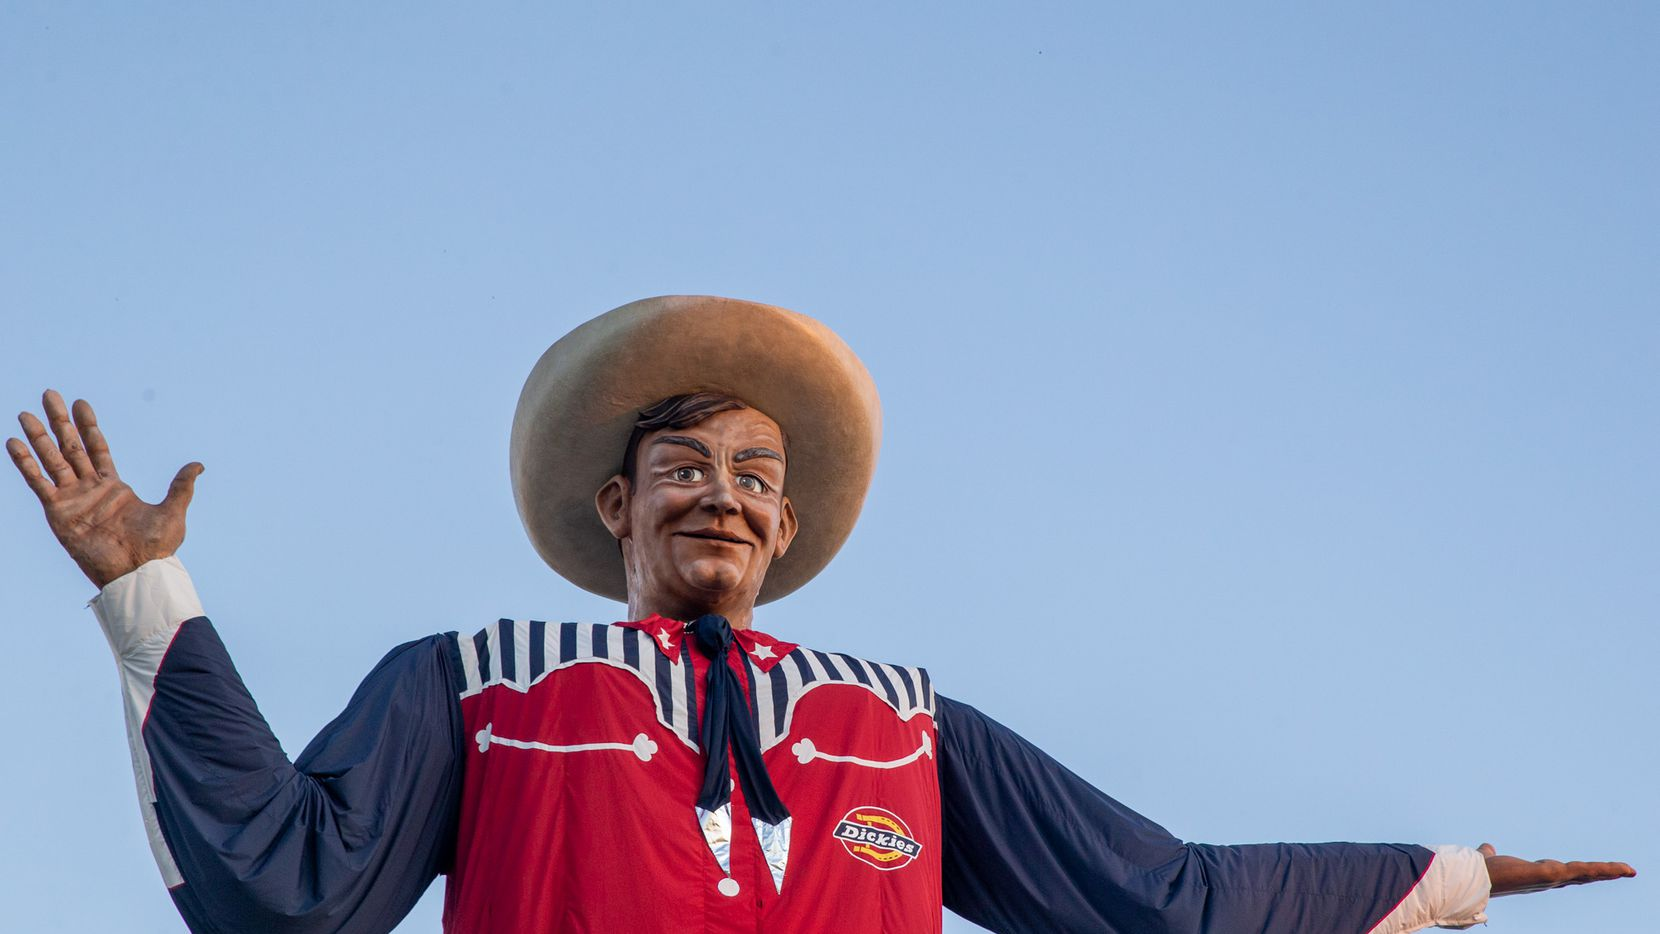 From 2013 to 2019, Bob Boykin was the voice of Big Tex at the State Fair of Texas. Boykin died in January 2020 and the State Fair will look for a new voice soon.